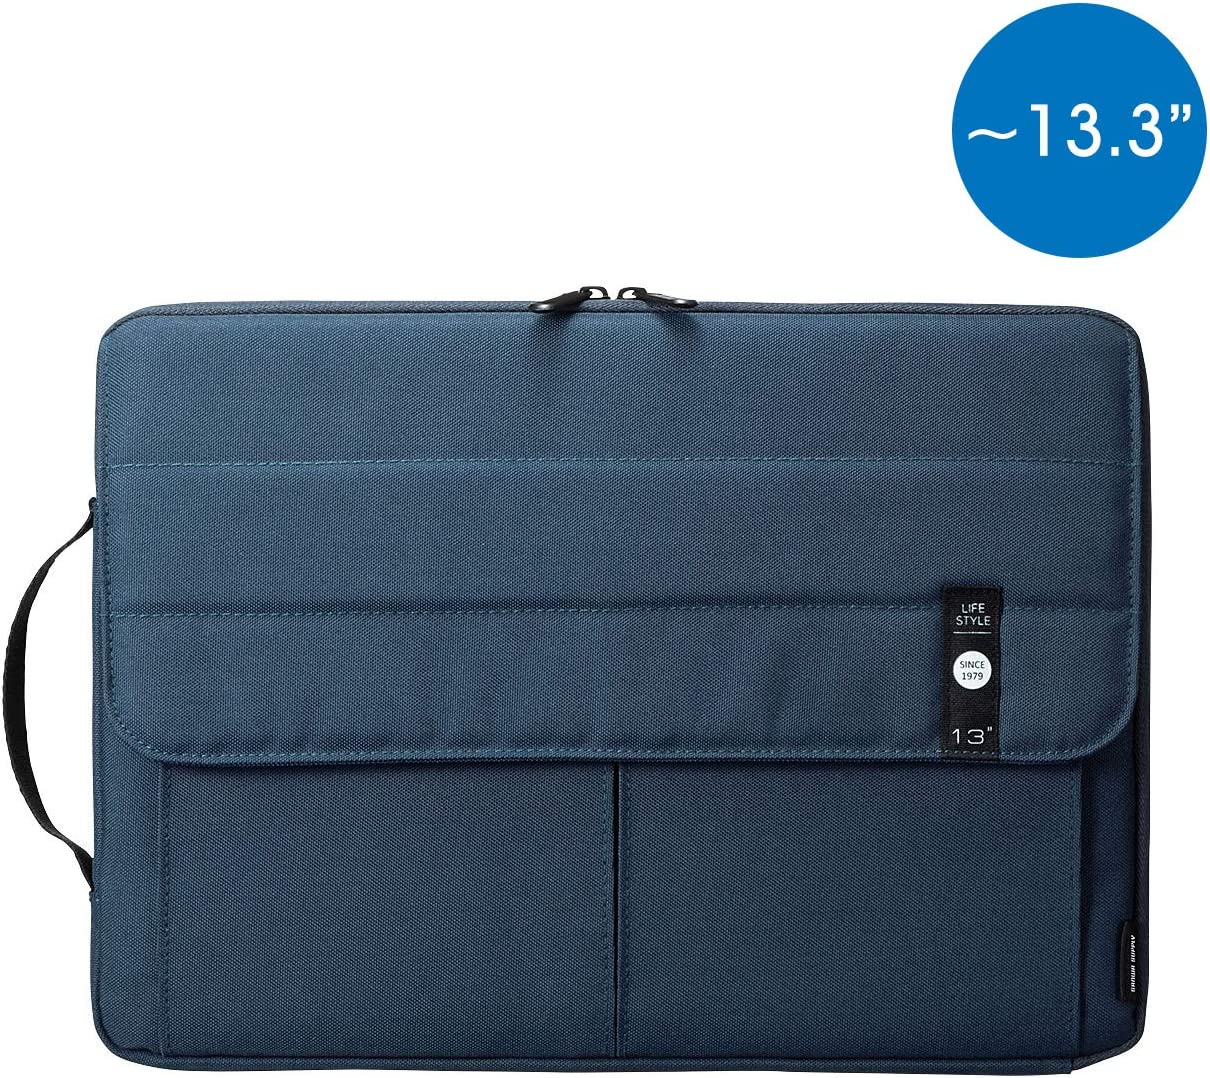 SANWA (Japan Brand) Laptop Computer Sleeve Case, Sleeve Bag Compatible with 11 inch MacBook Pro, MacBook Air, Pad,HP, Dell, Notebook Computer, Water Resistance Case Cover with Pocket, Navy